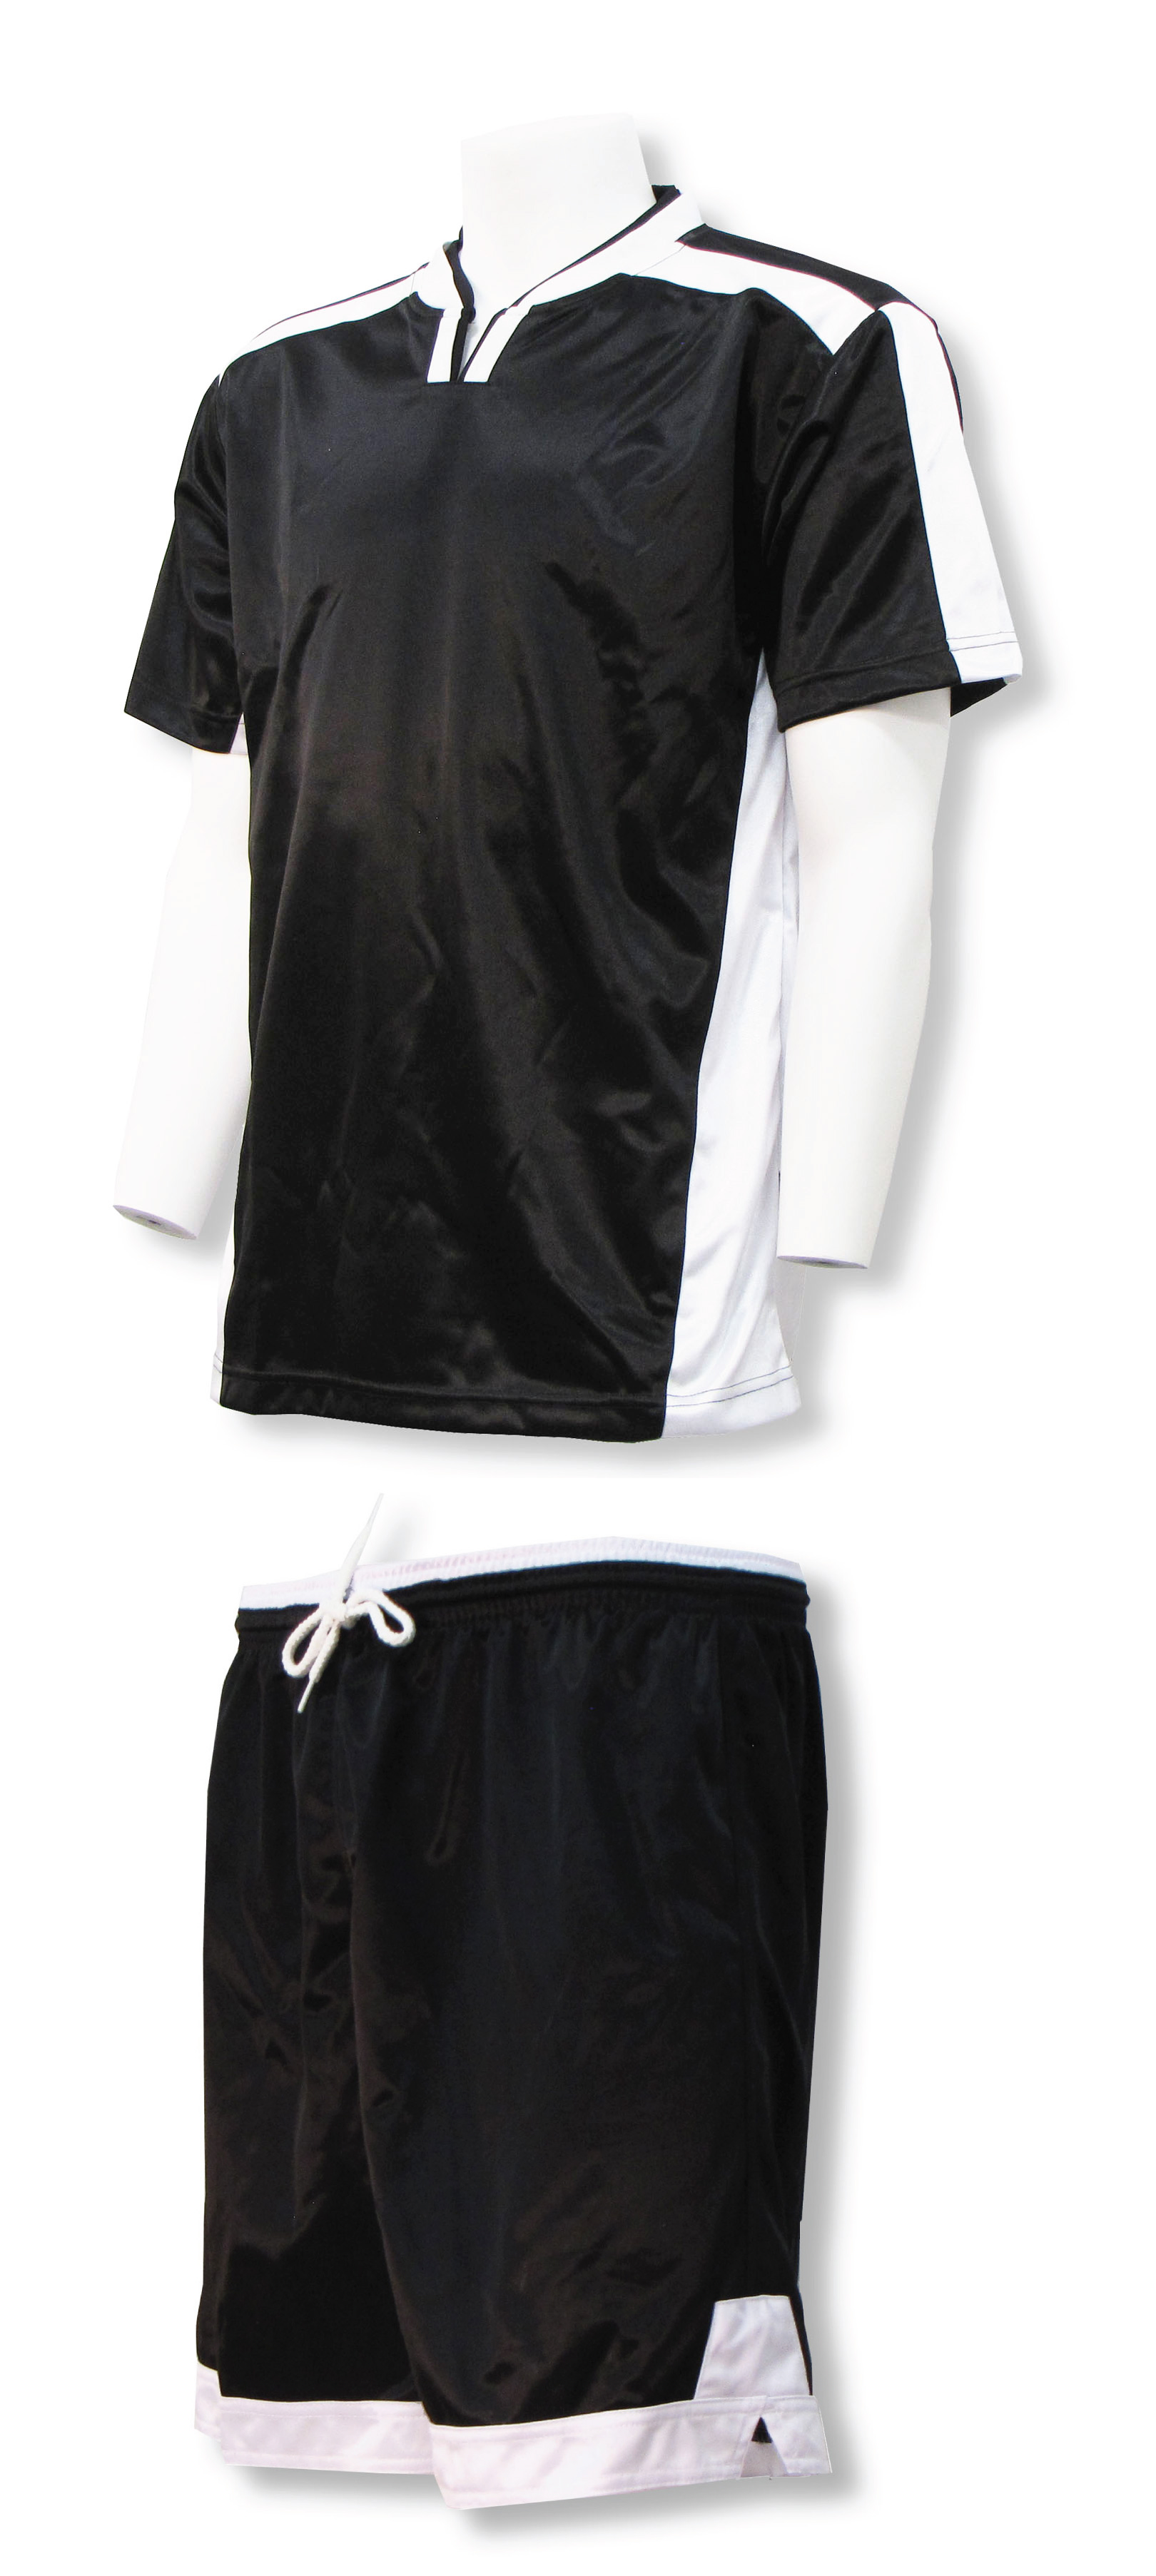 Winchester jersey and short set in black/white by Code Four Atheltics